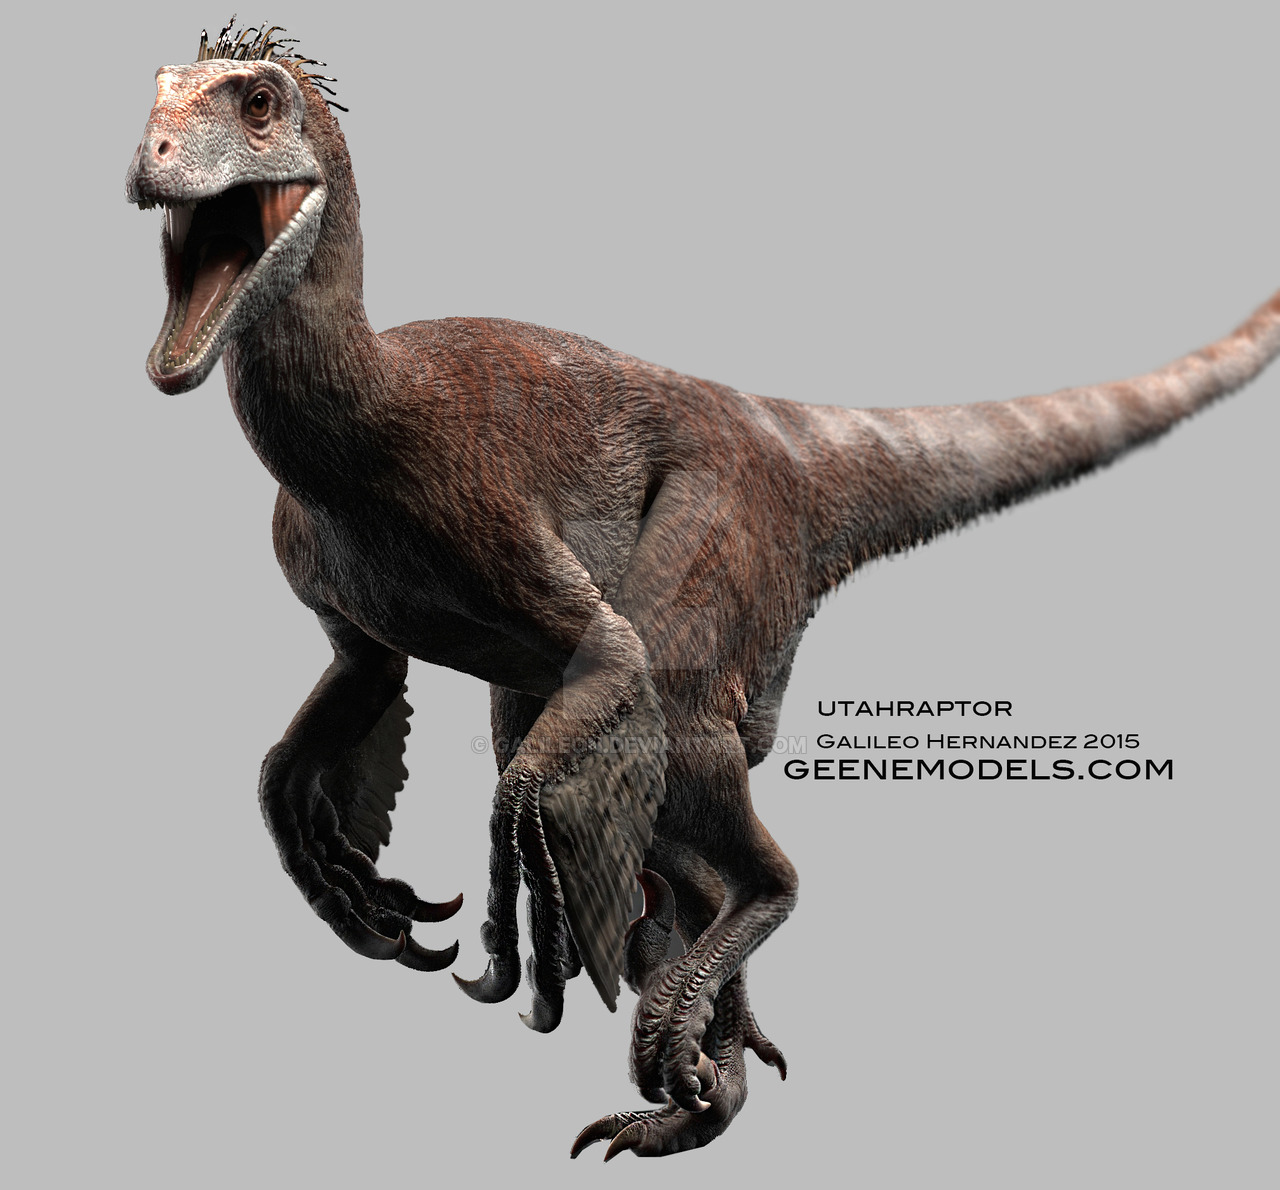 utahraptor facts and pictures